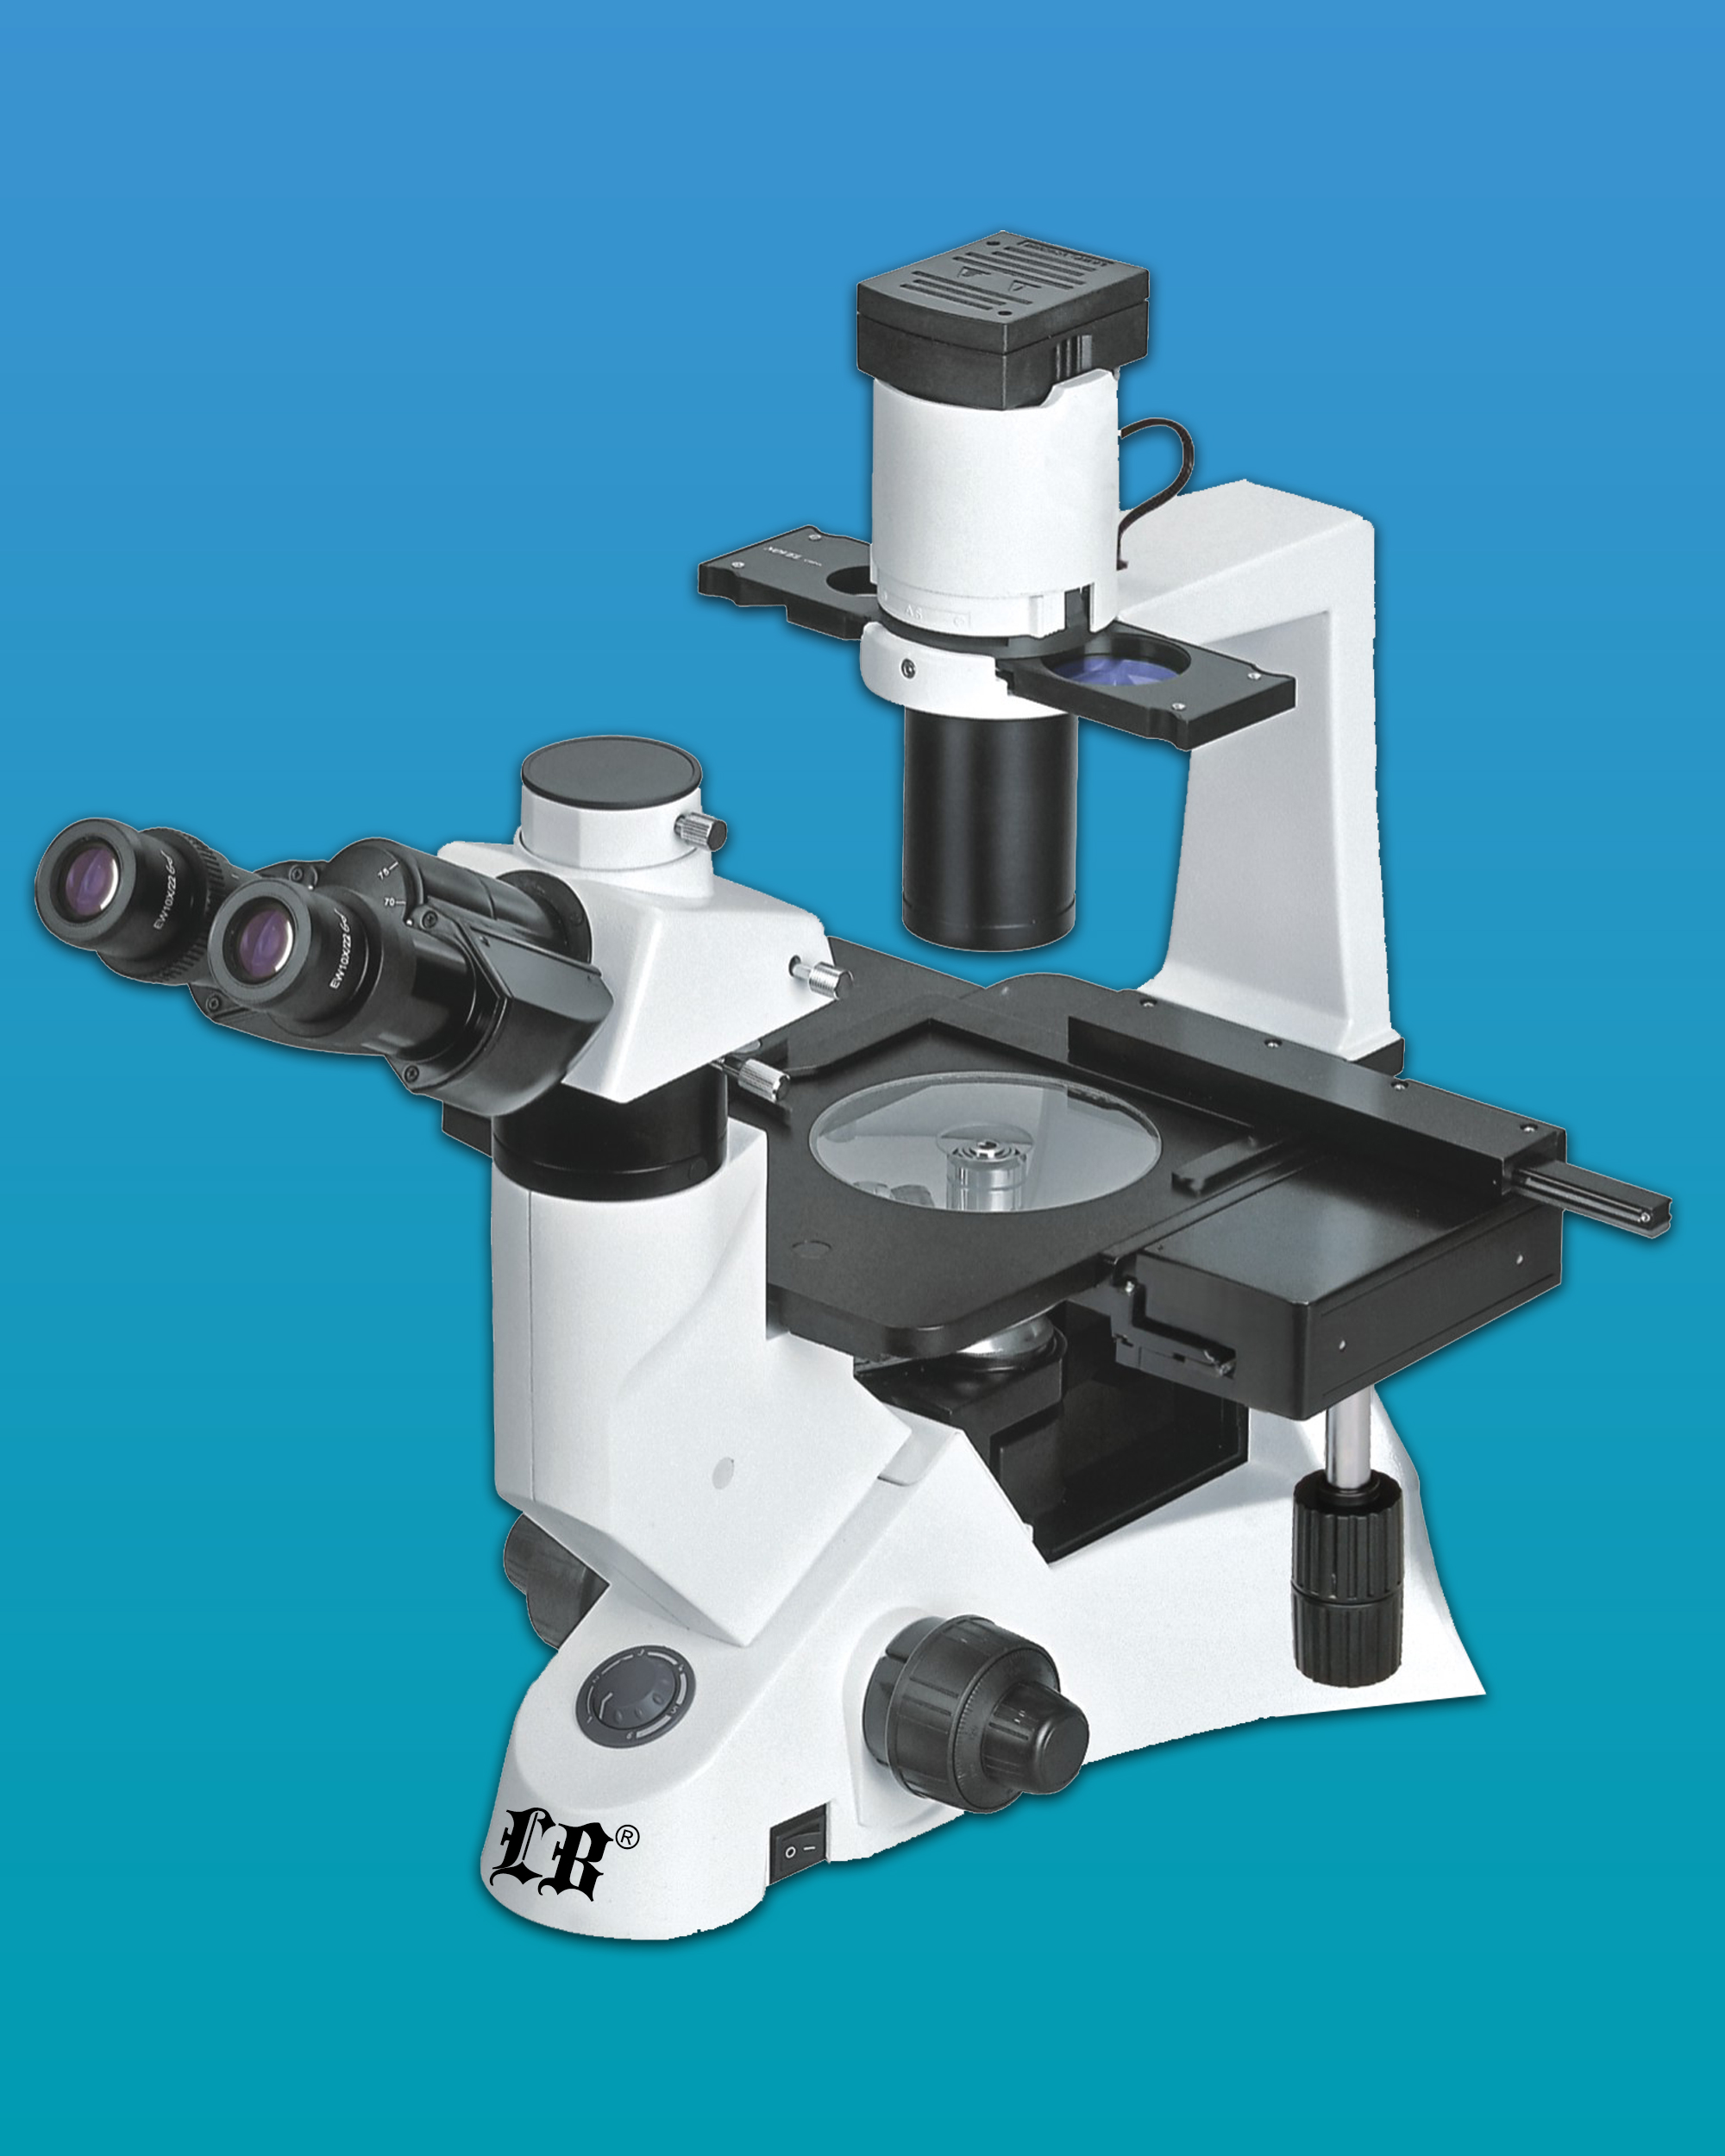 [LB-290] Inverted Trinocular Biological Microscope w/ Infinite Optical System